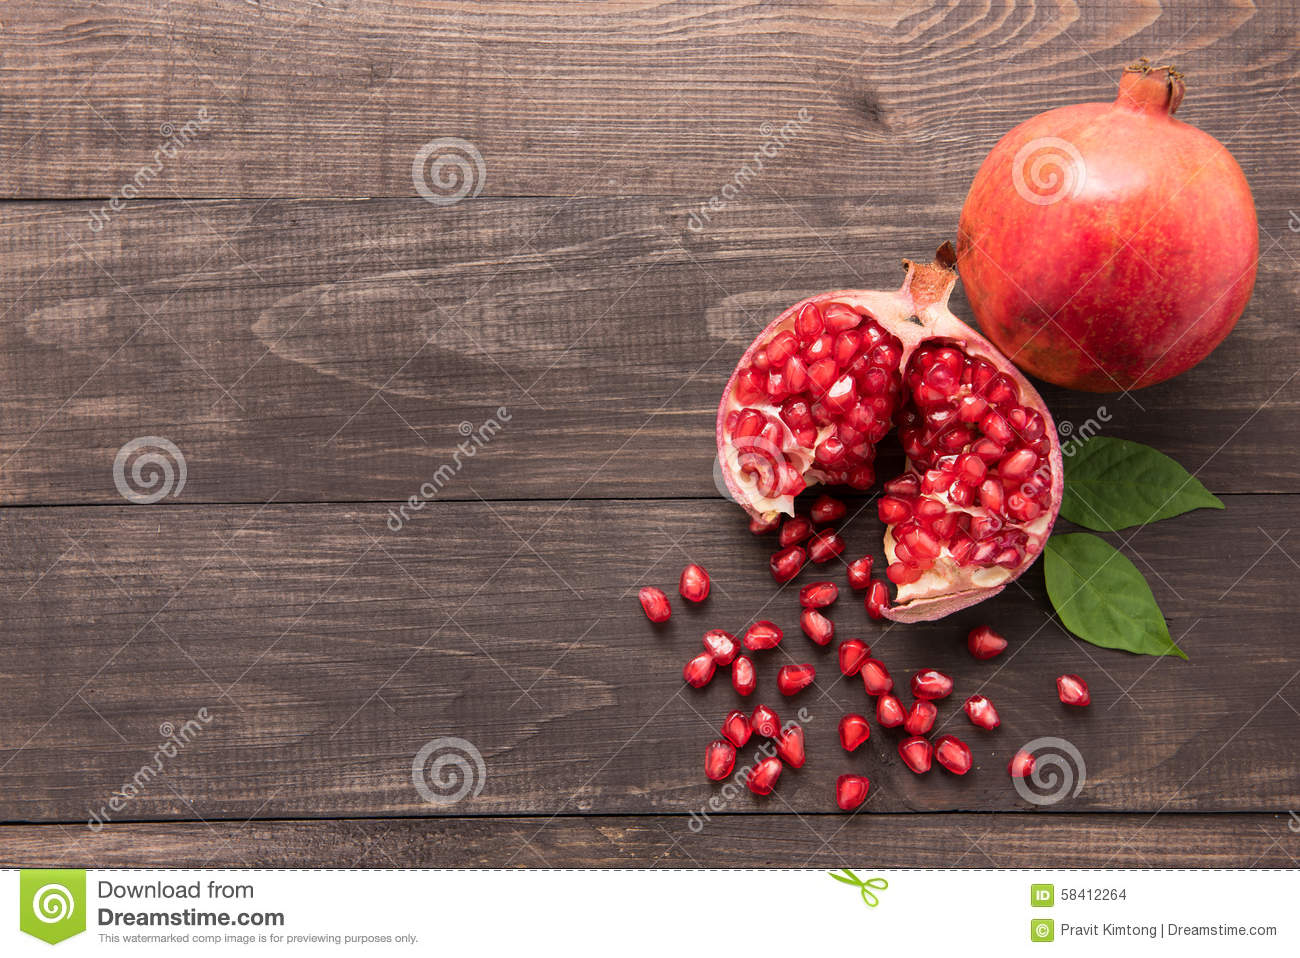 Ripe pomegranate fruit on wooden vintage background